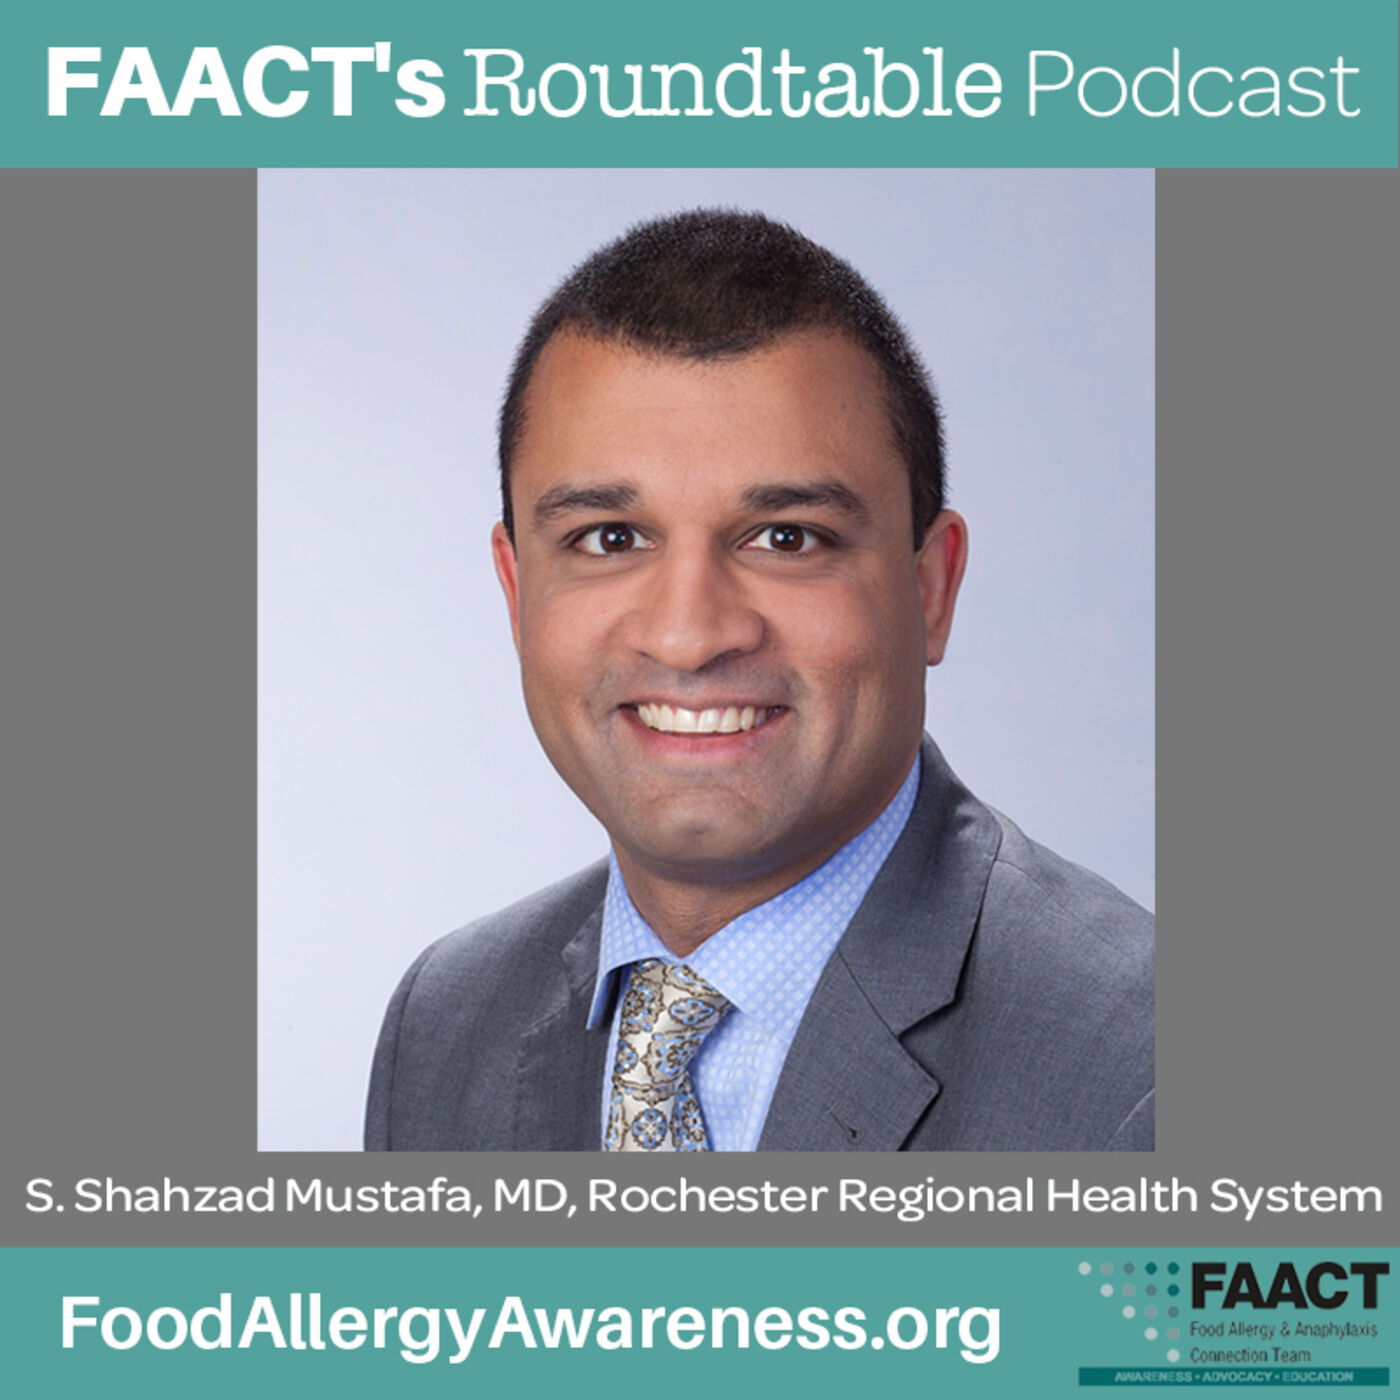 Ep. 49: COVID-19 Vaccinations, Safety, and the Impact on Food Allergy